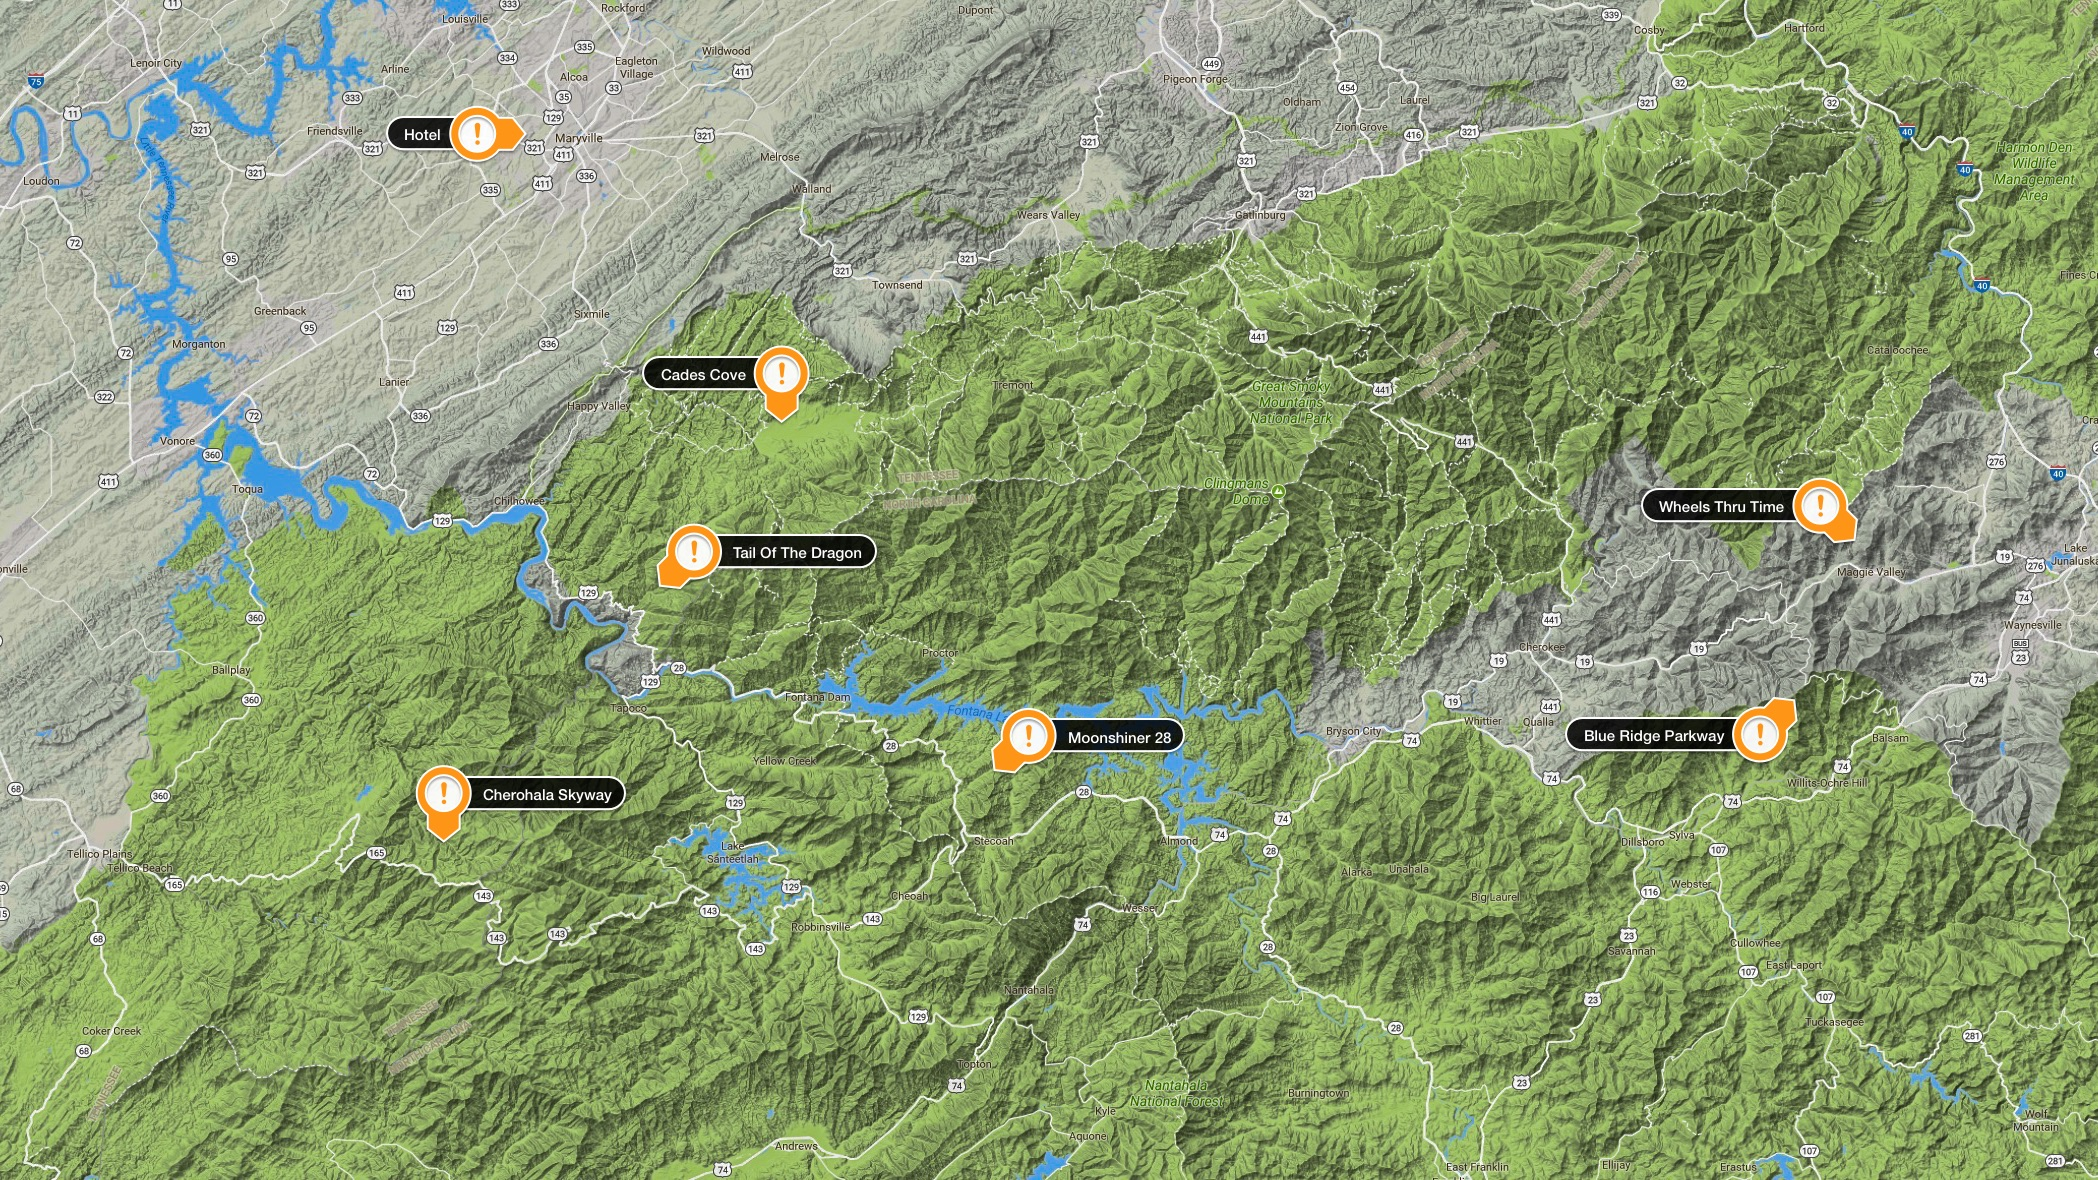 Map of the Smoky Mountains Area with Highlights